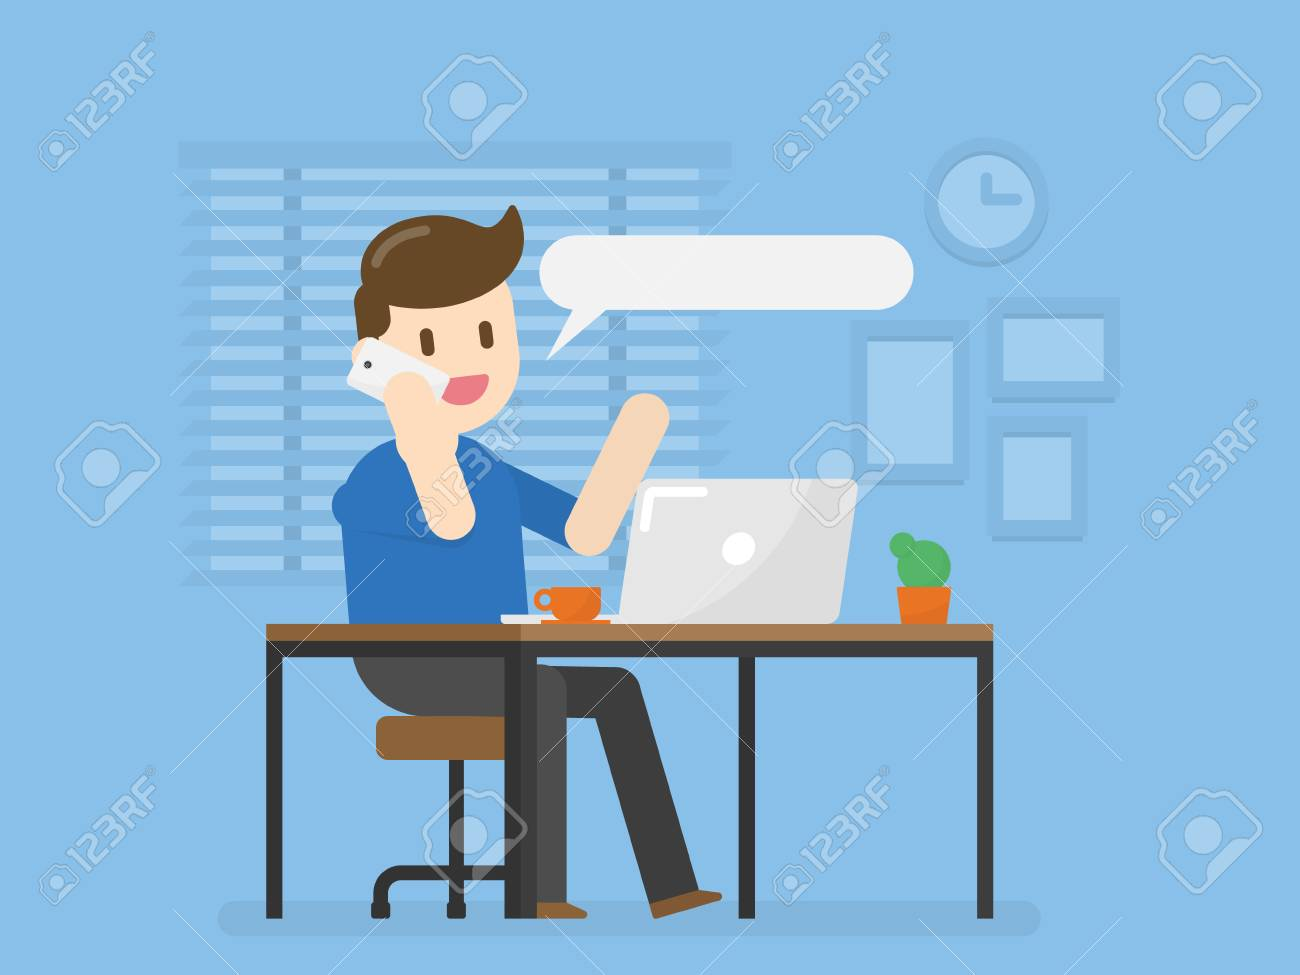 Young Man In Home Office Talking On Phone. Vector Illustration Concept Of People Lifestyle. - 118382431